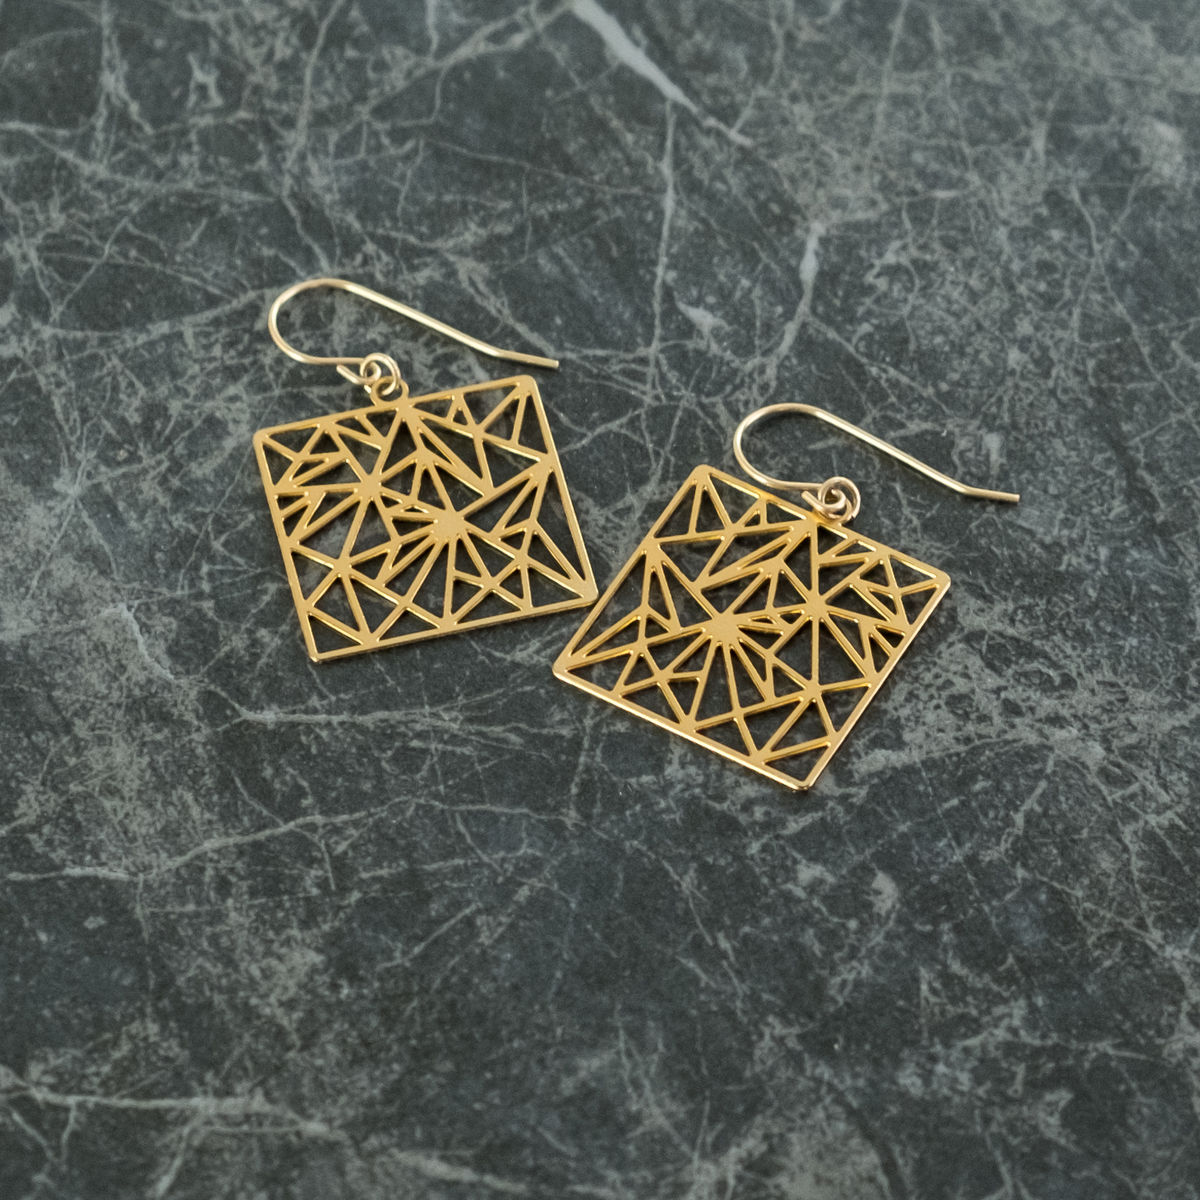 Square with Random Triangles: gold plated earrings from MIZYAN - product images  of